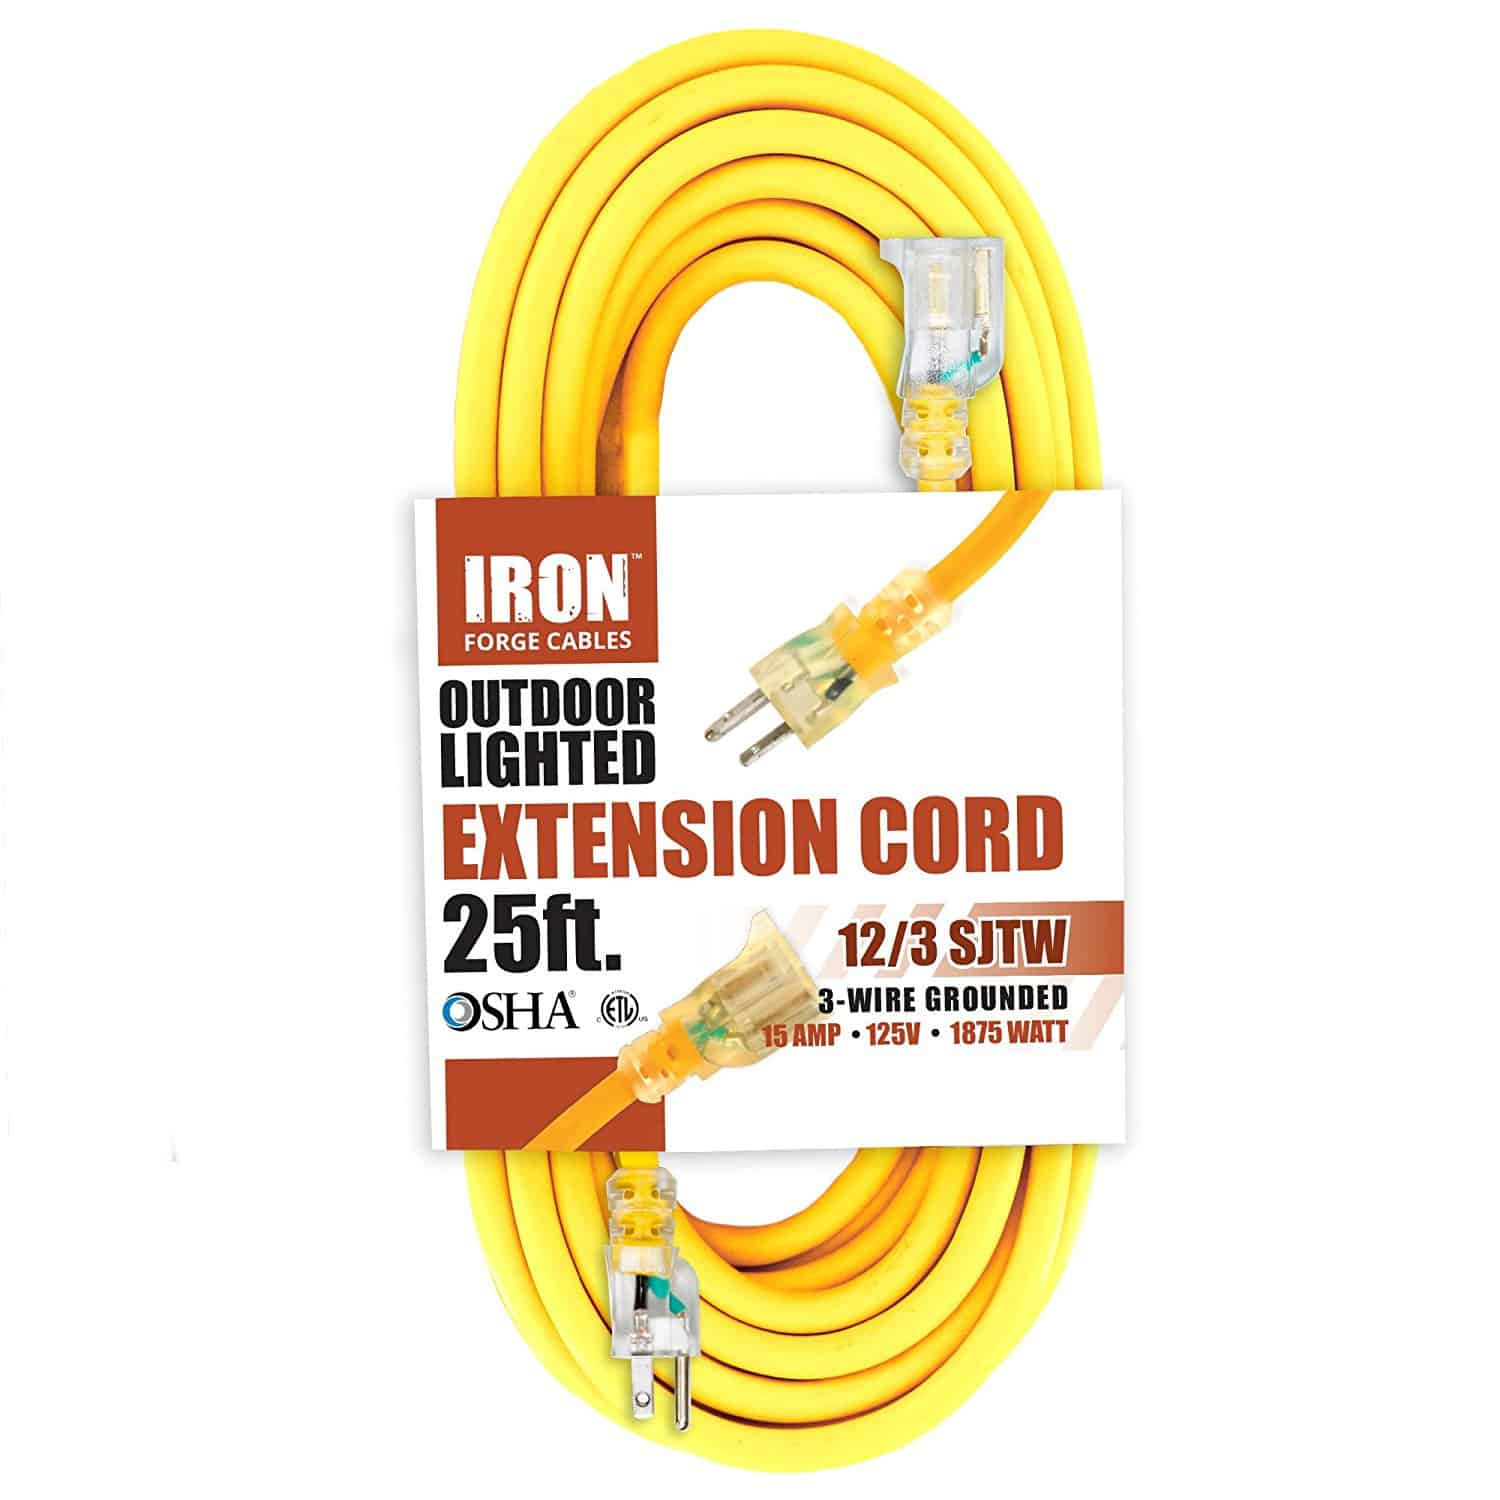 hight resolution of outdoor lighted extension cord 25ft osha approved